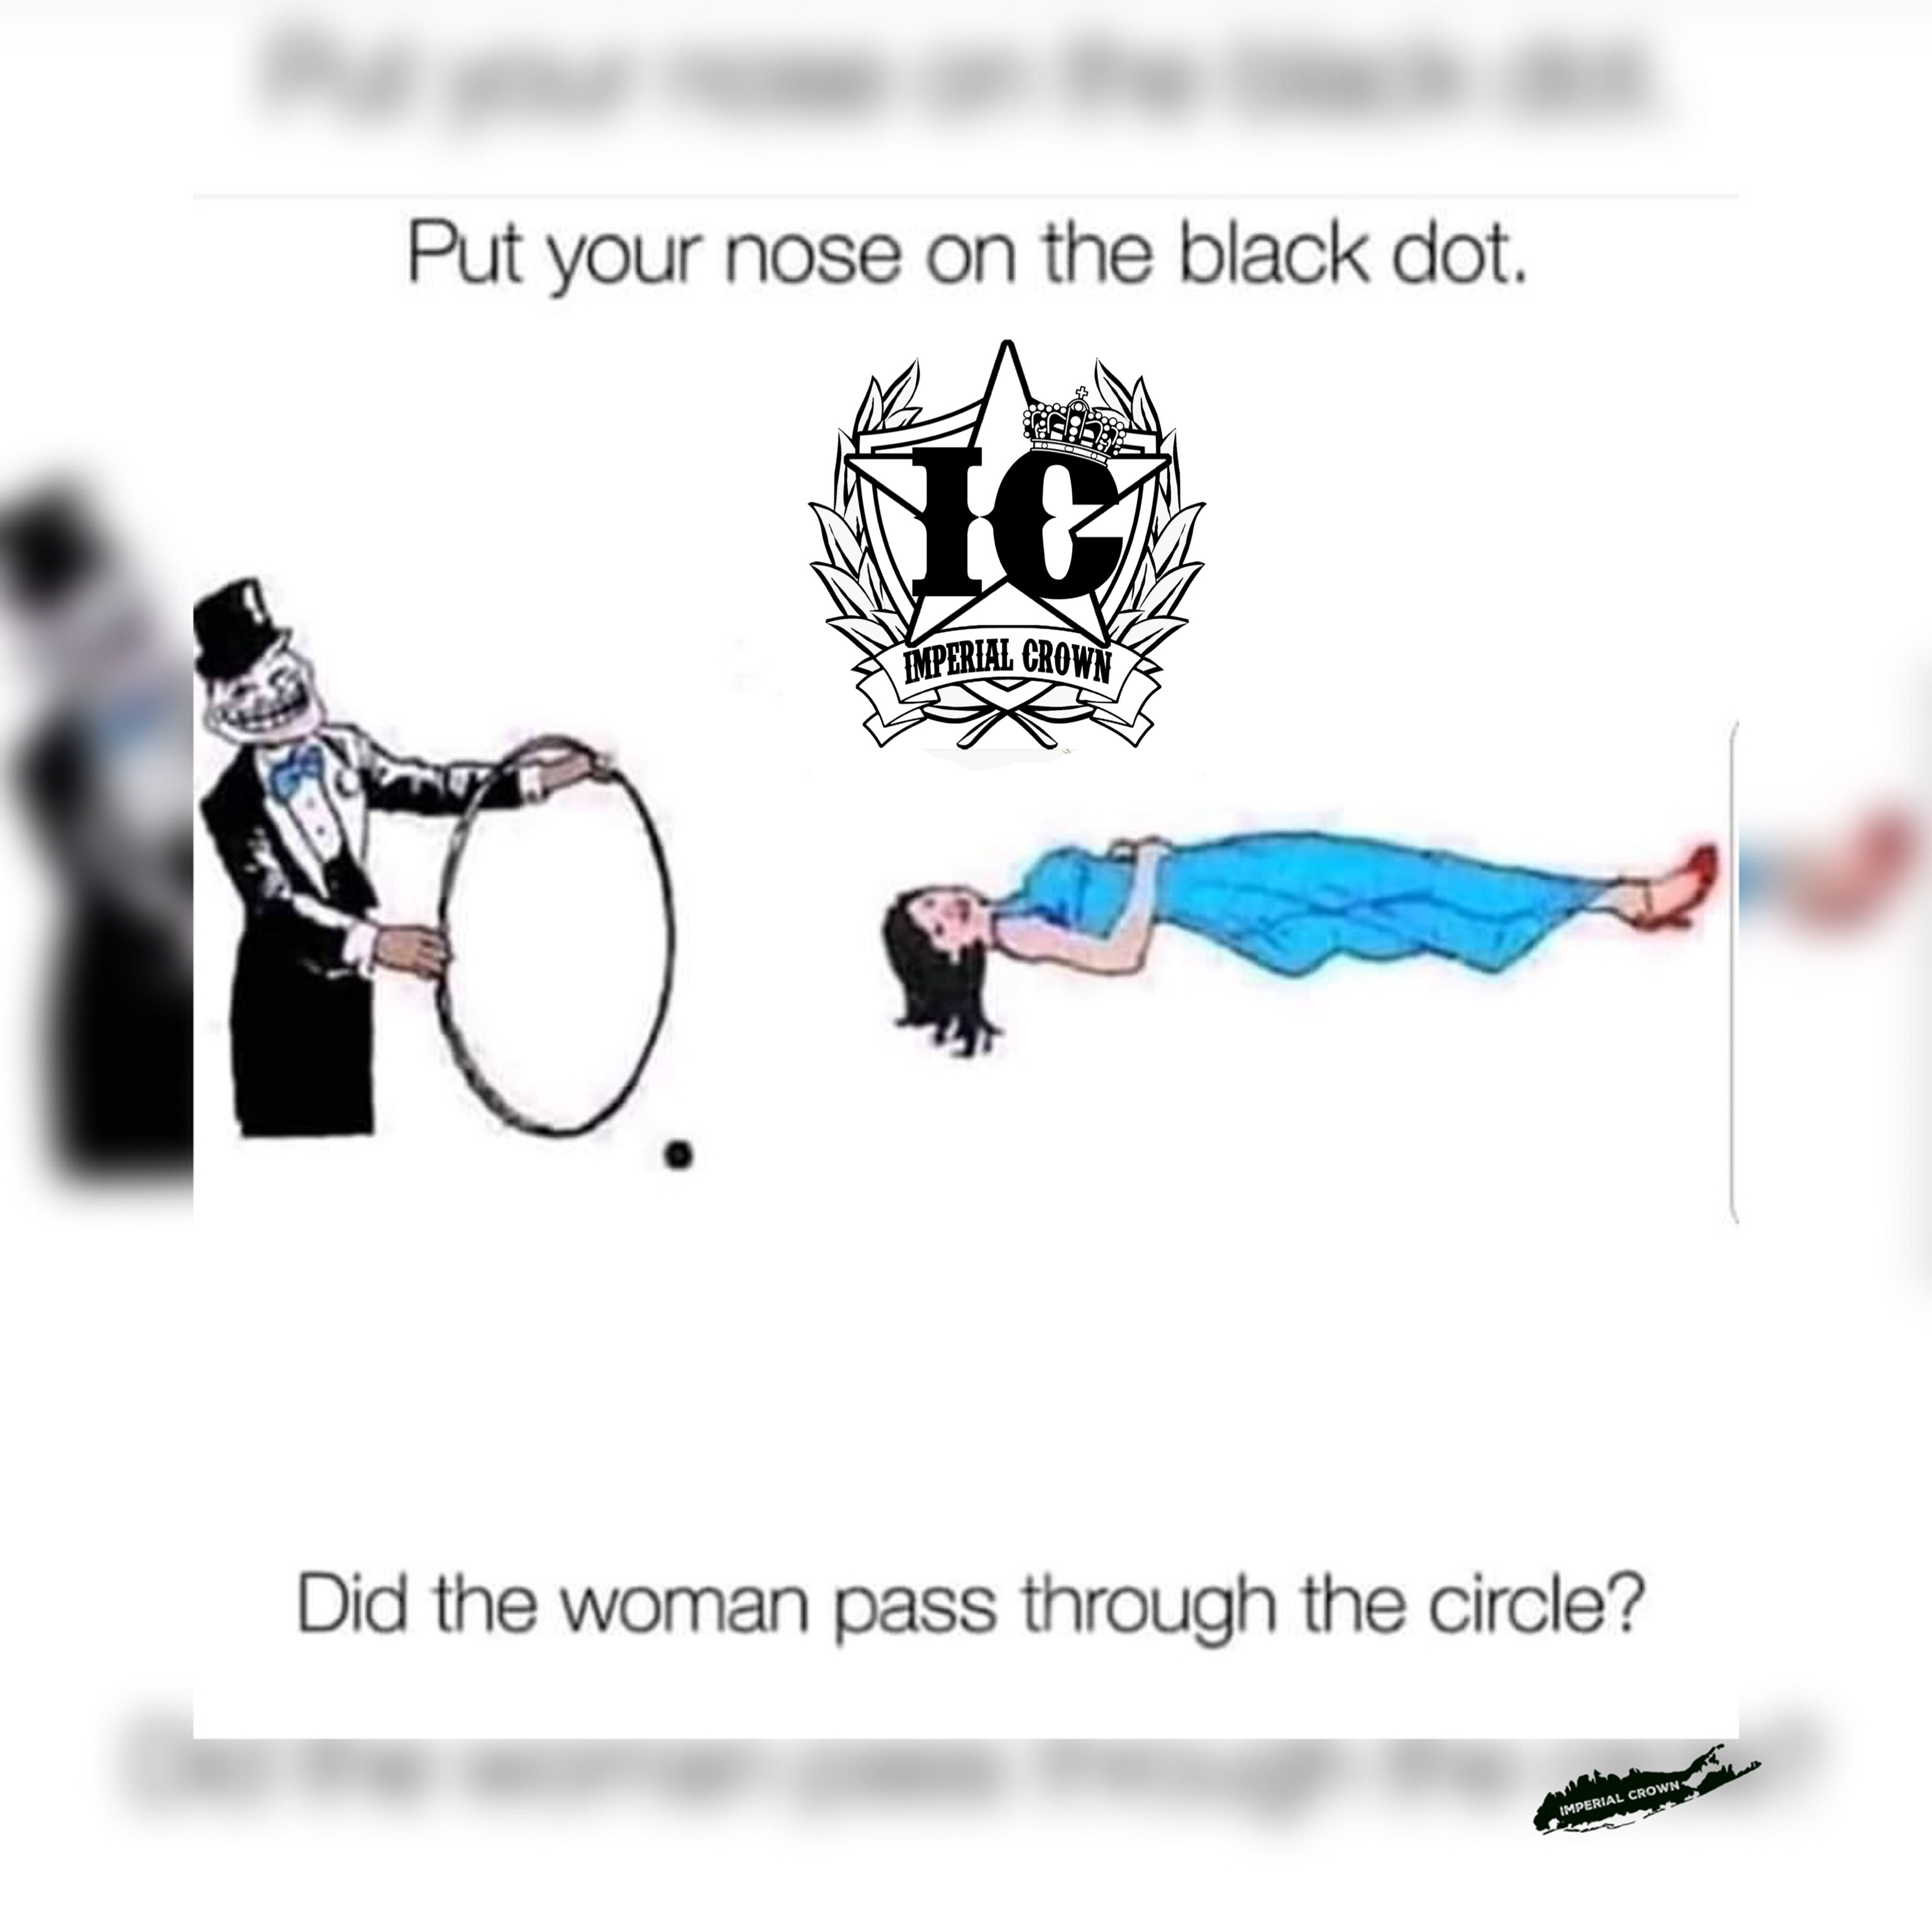 Put your nose on the black dot …